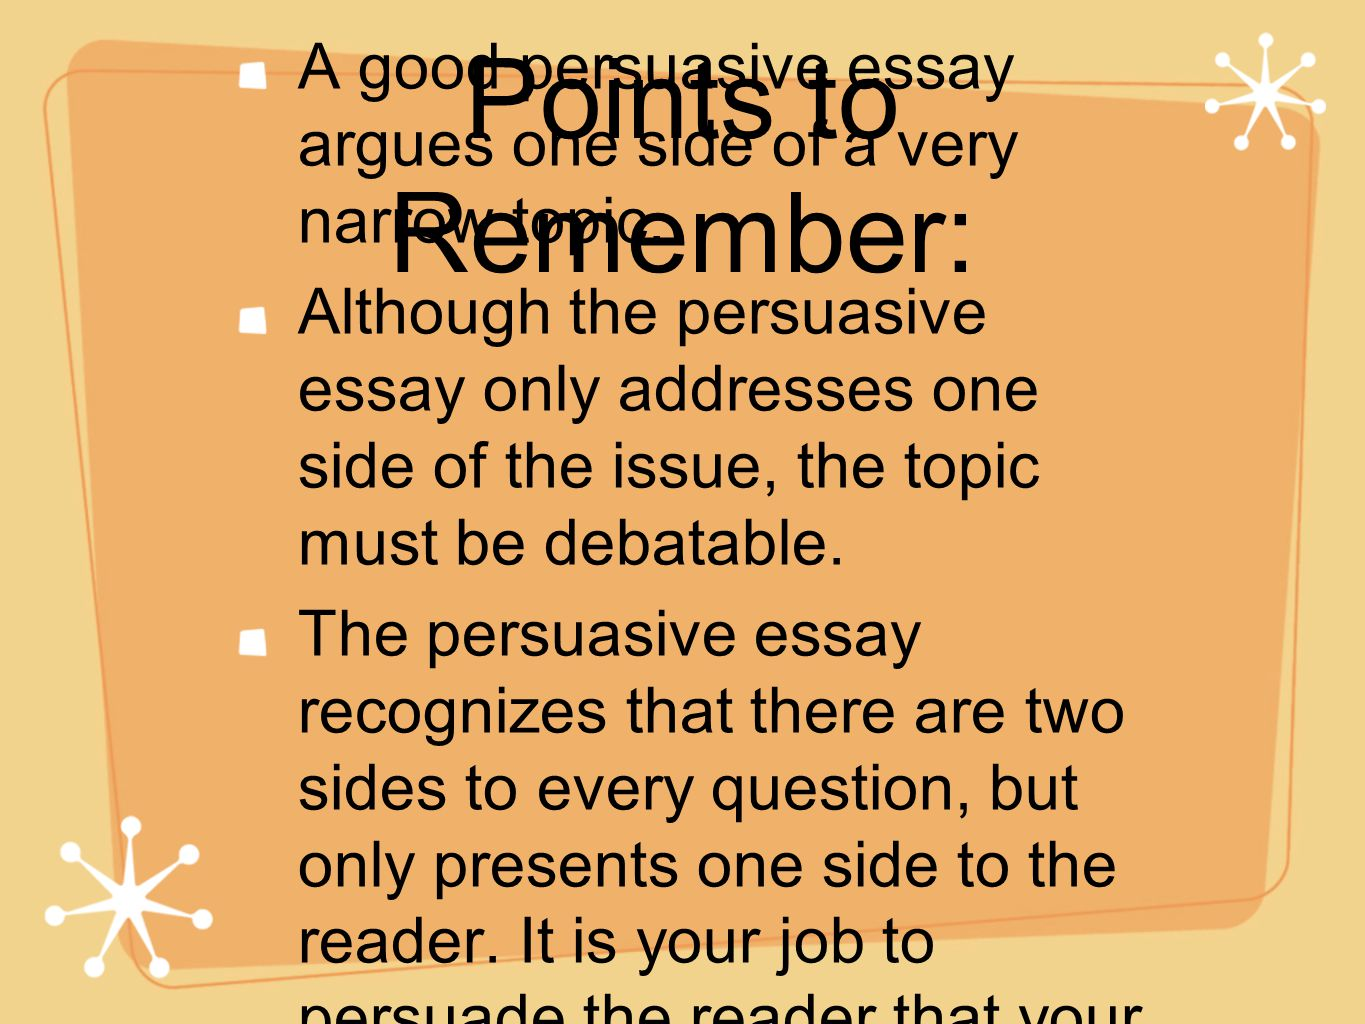 Writing A Persuasive Essay  Ppt Download Points To Remember A Good Persuasive Essay Argues One Side Of A Very  Narrow Topic Probability Statistics Help also How To Write A Thesis Essay  What Is The Thesis In An Essay